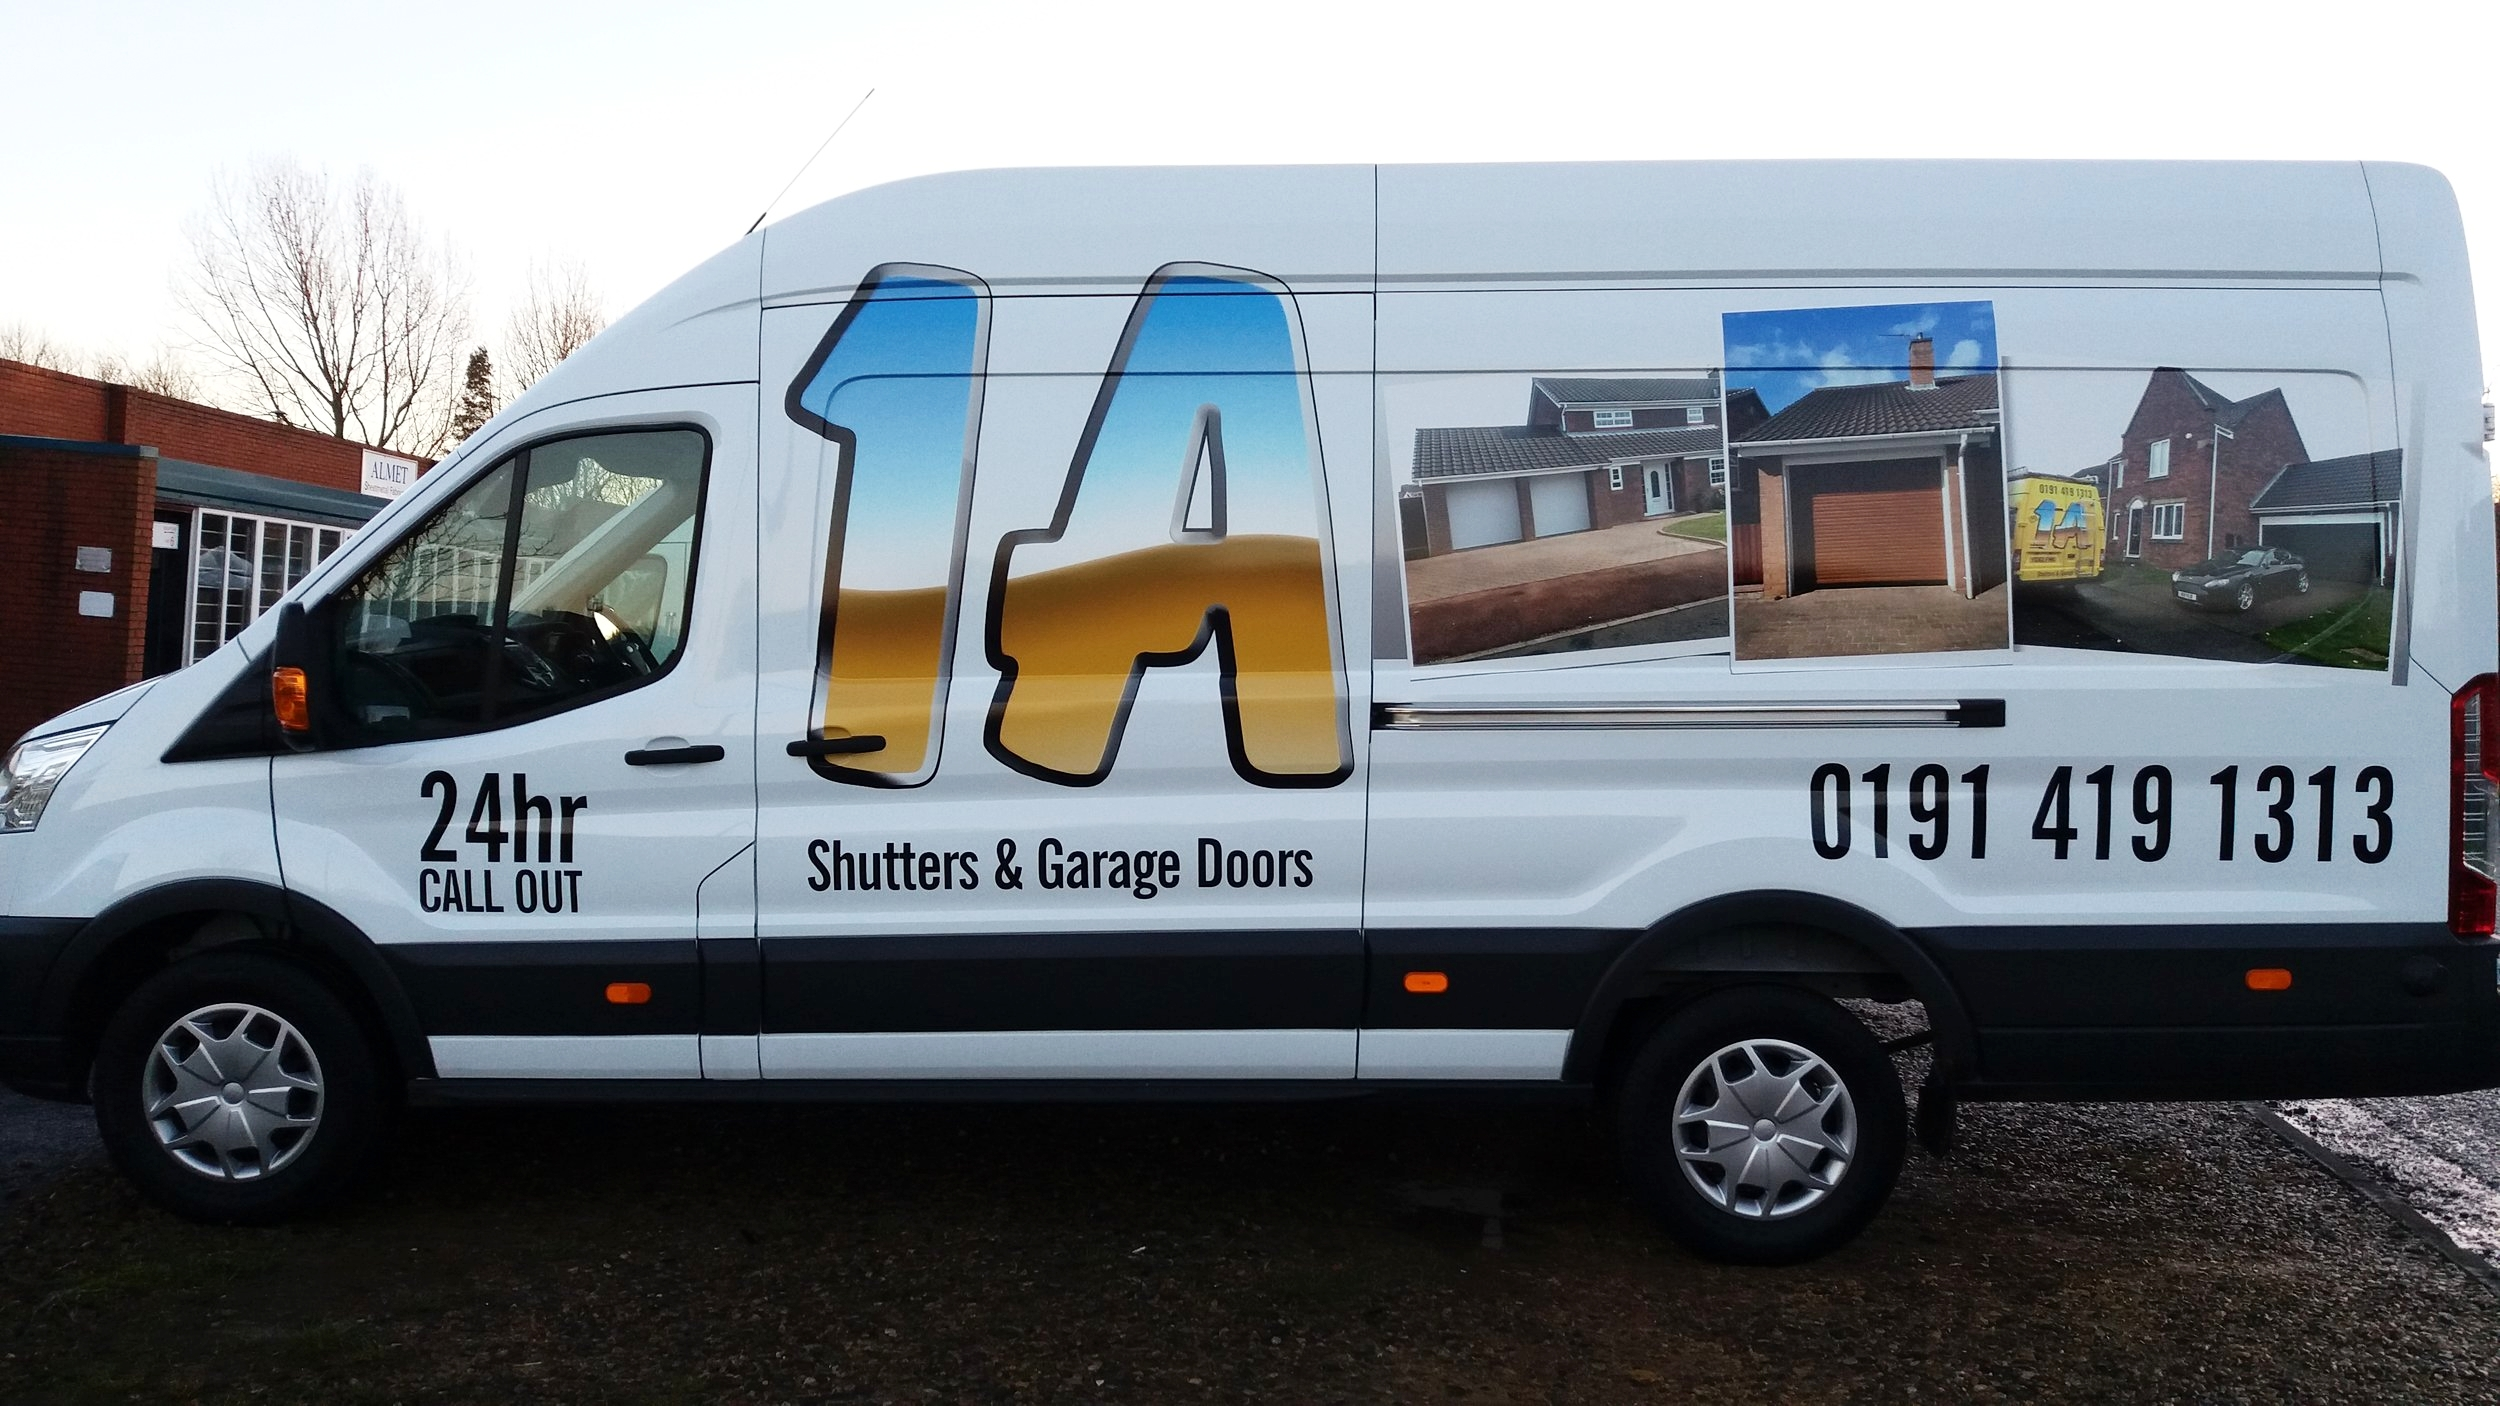 1A SHUTTERS   1A Shutters, a returning customer wanted similar graphics from a previous design, applied to a new larger van. This installation incorporated the use of vinyl lettering along with a special type of cast vinyl, to give the van a professional high quality finish.